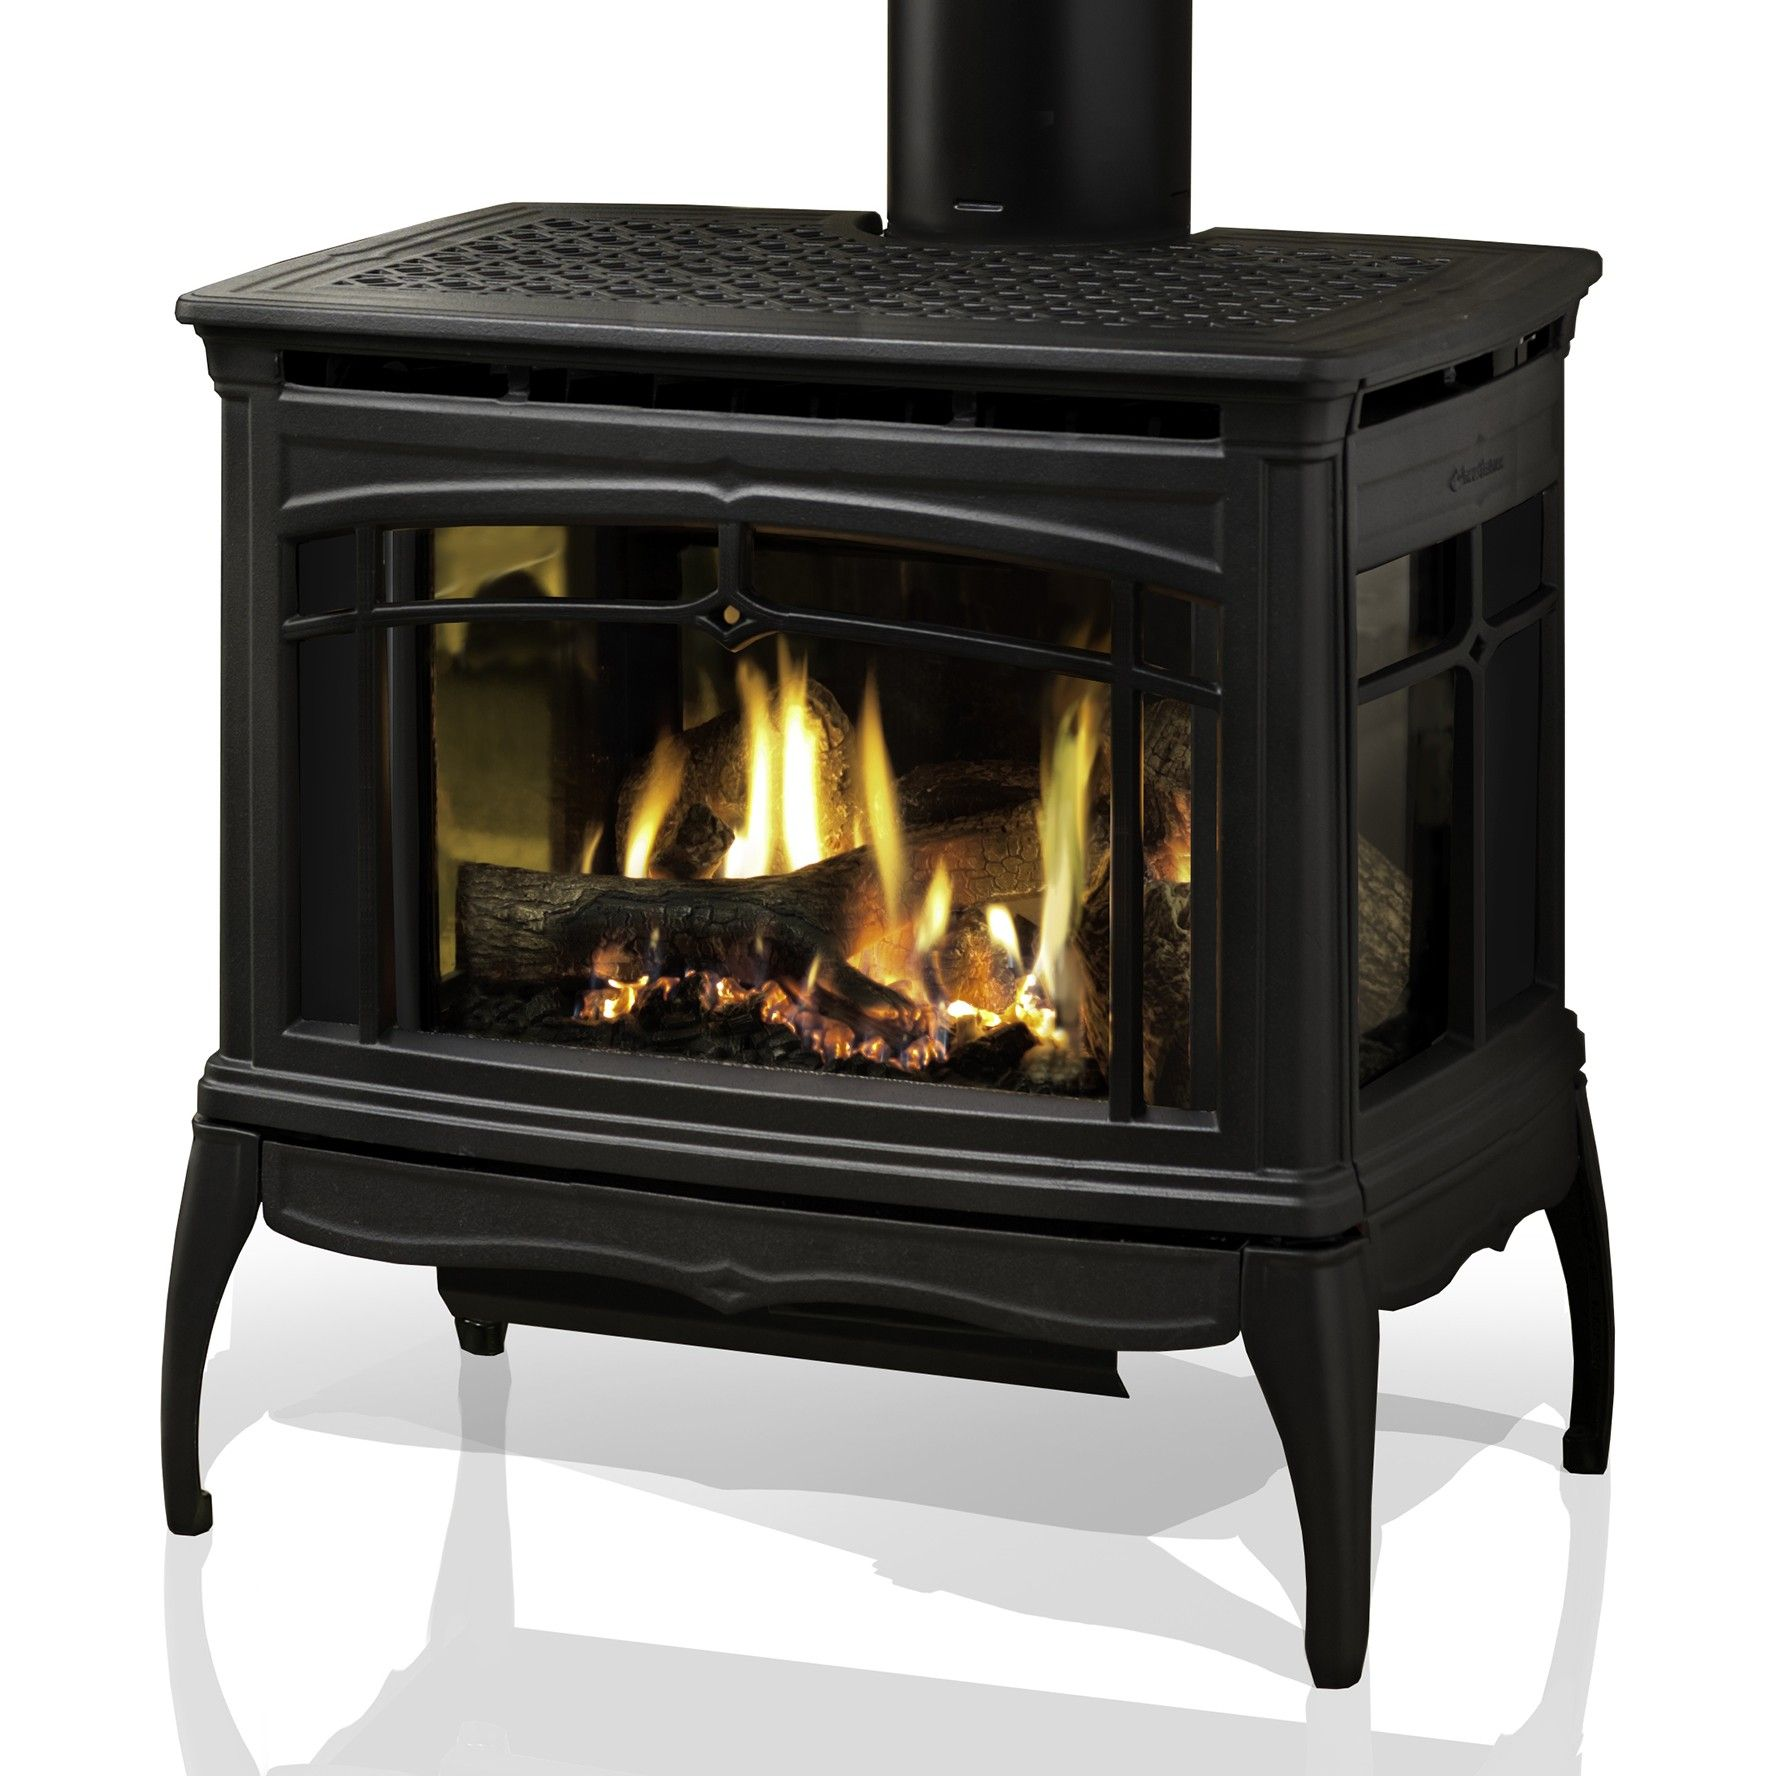 Lopi Northfield Gas Stove Prices Tyres2c - Electric Stove Price